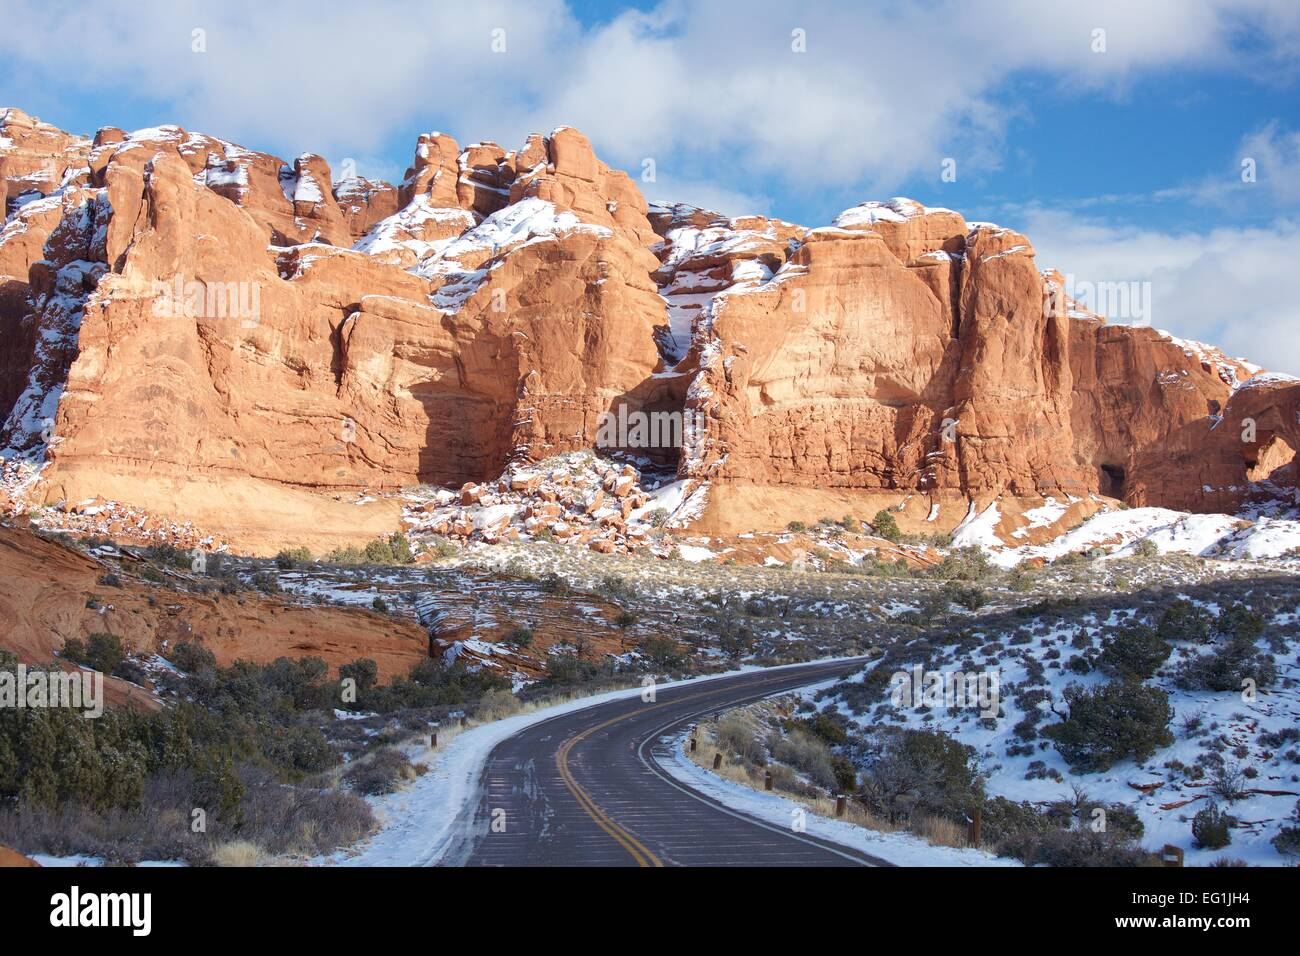 Things To Do In Moab During Winter • Columbia Blog